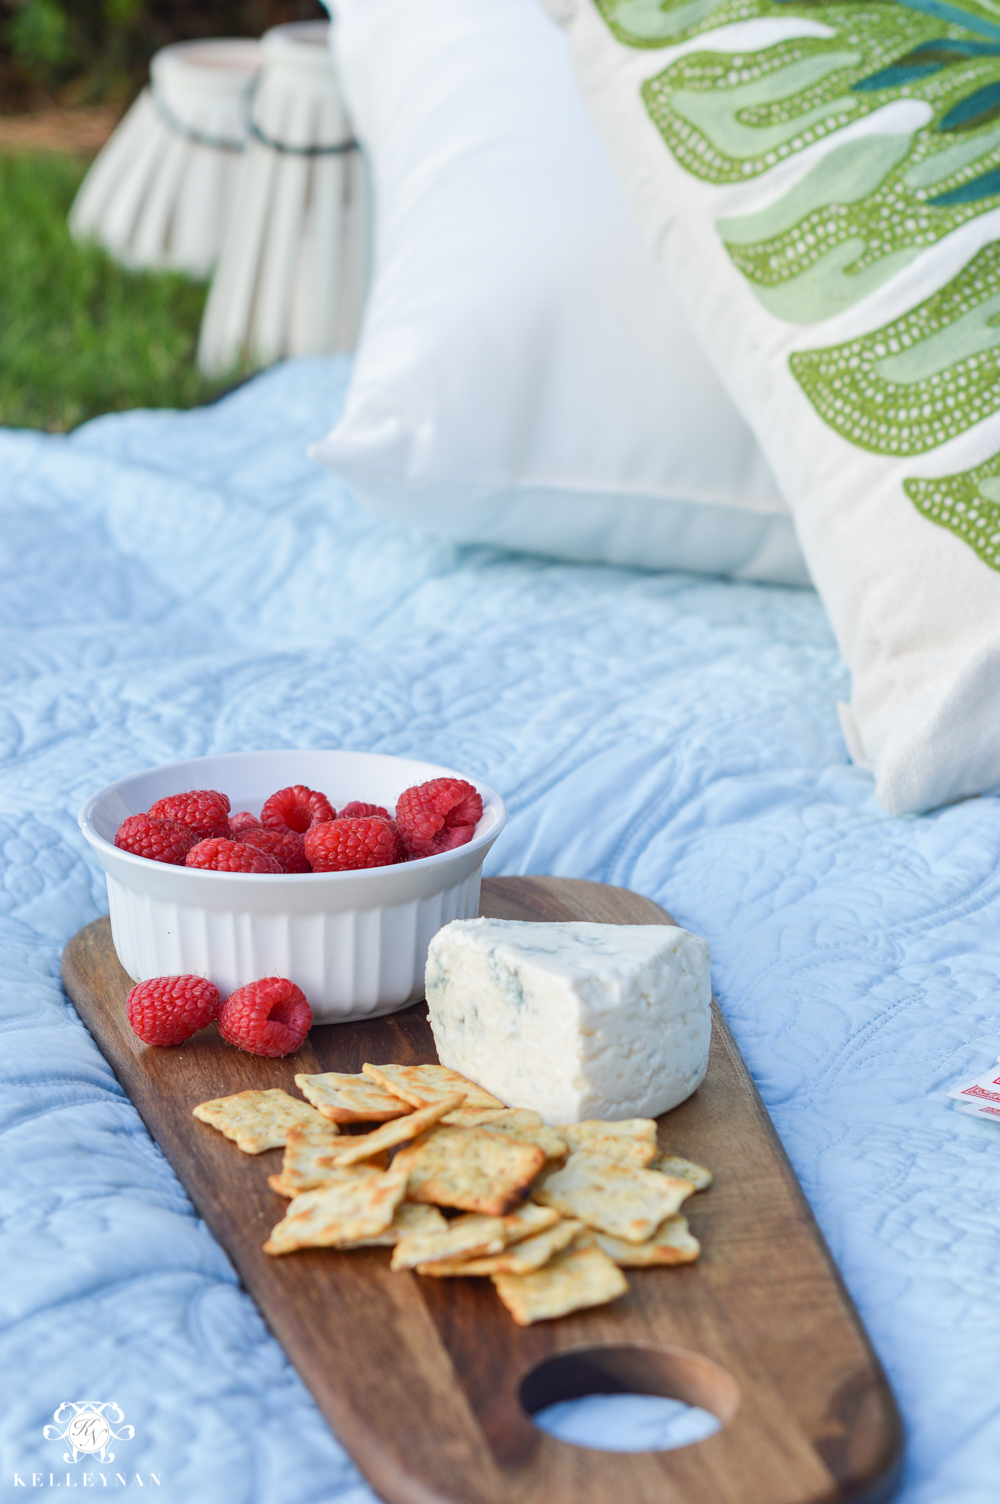 Picnic and Tailgate Ideas and Setup- cheese board with fruit on picnic